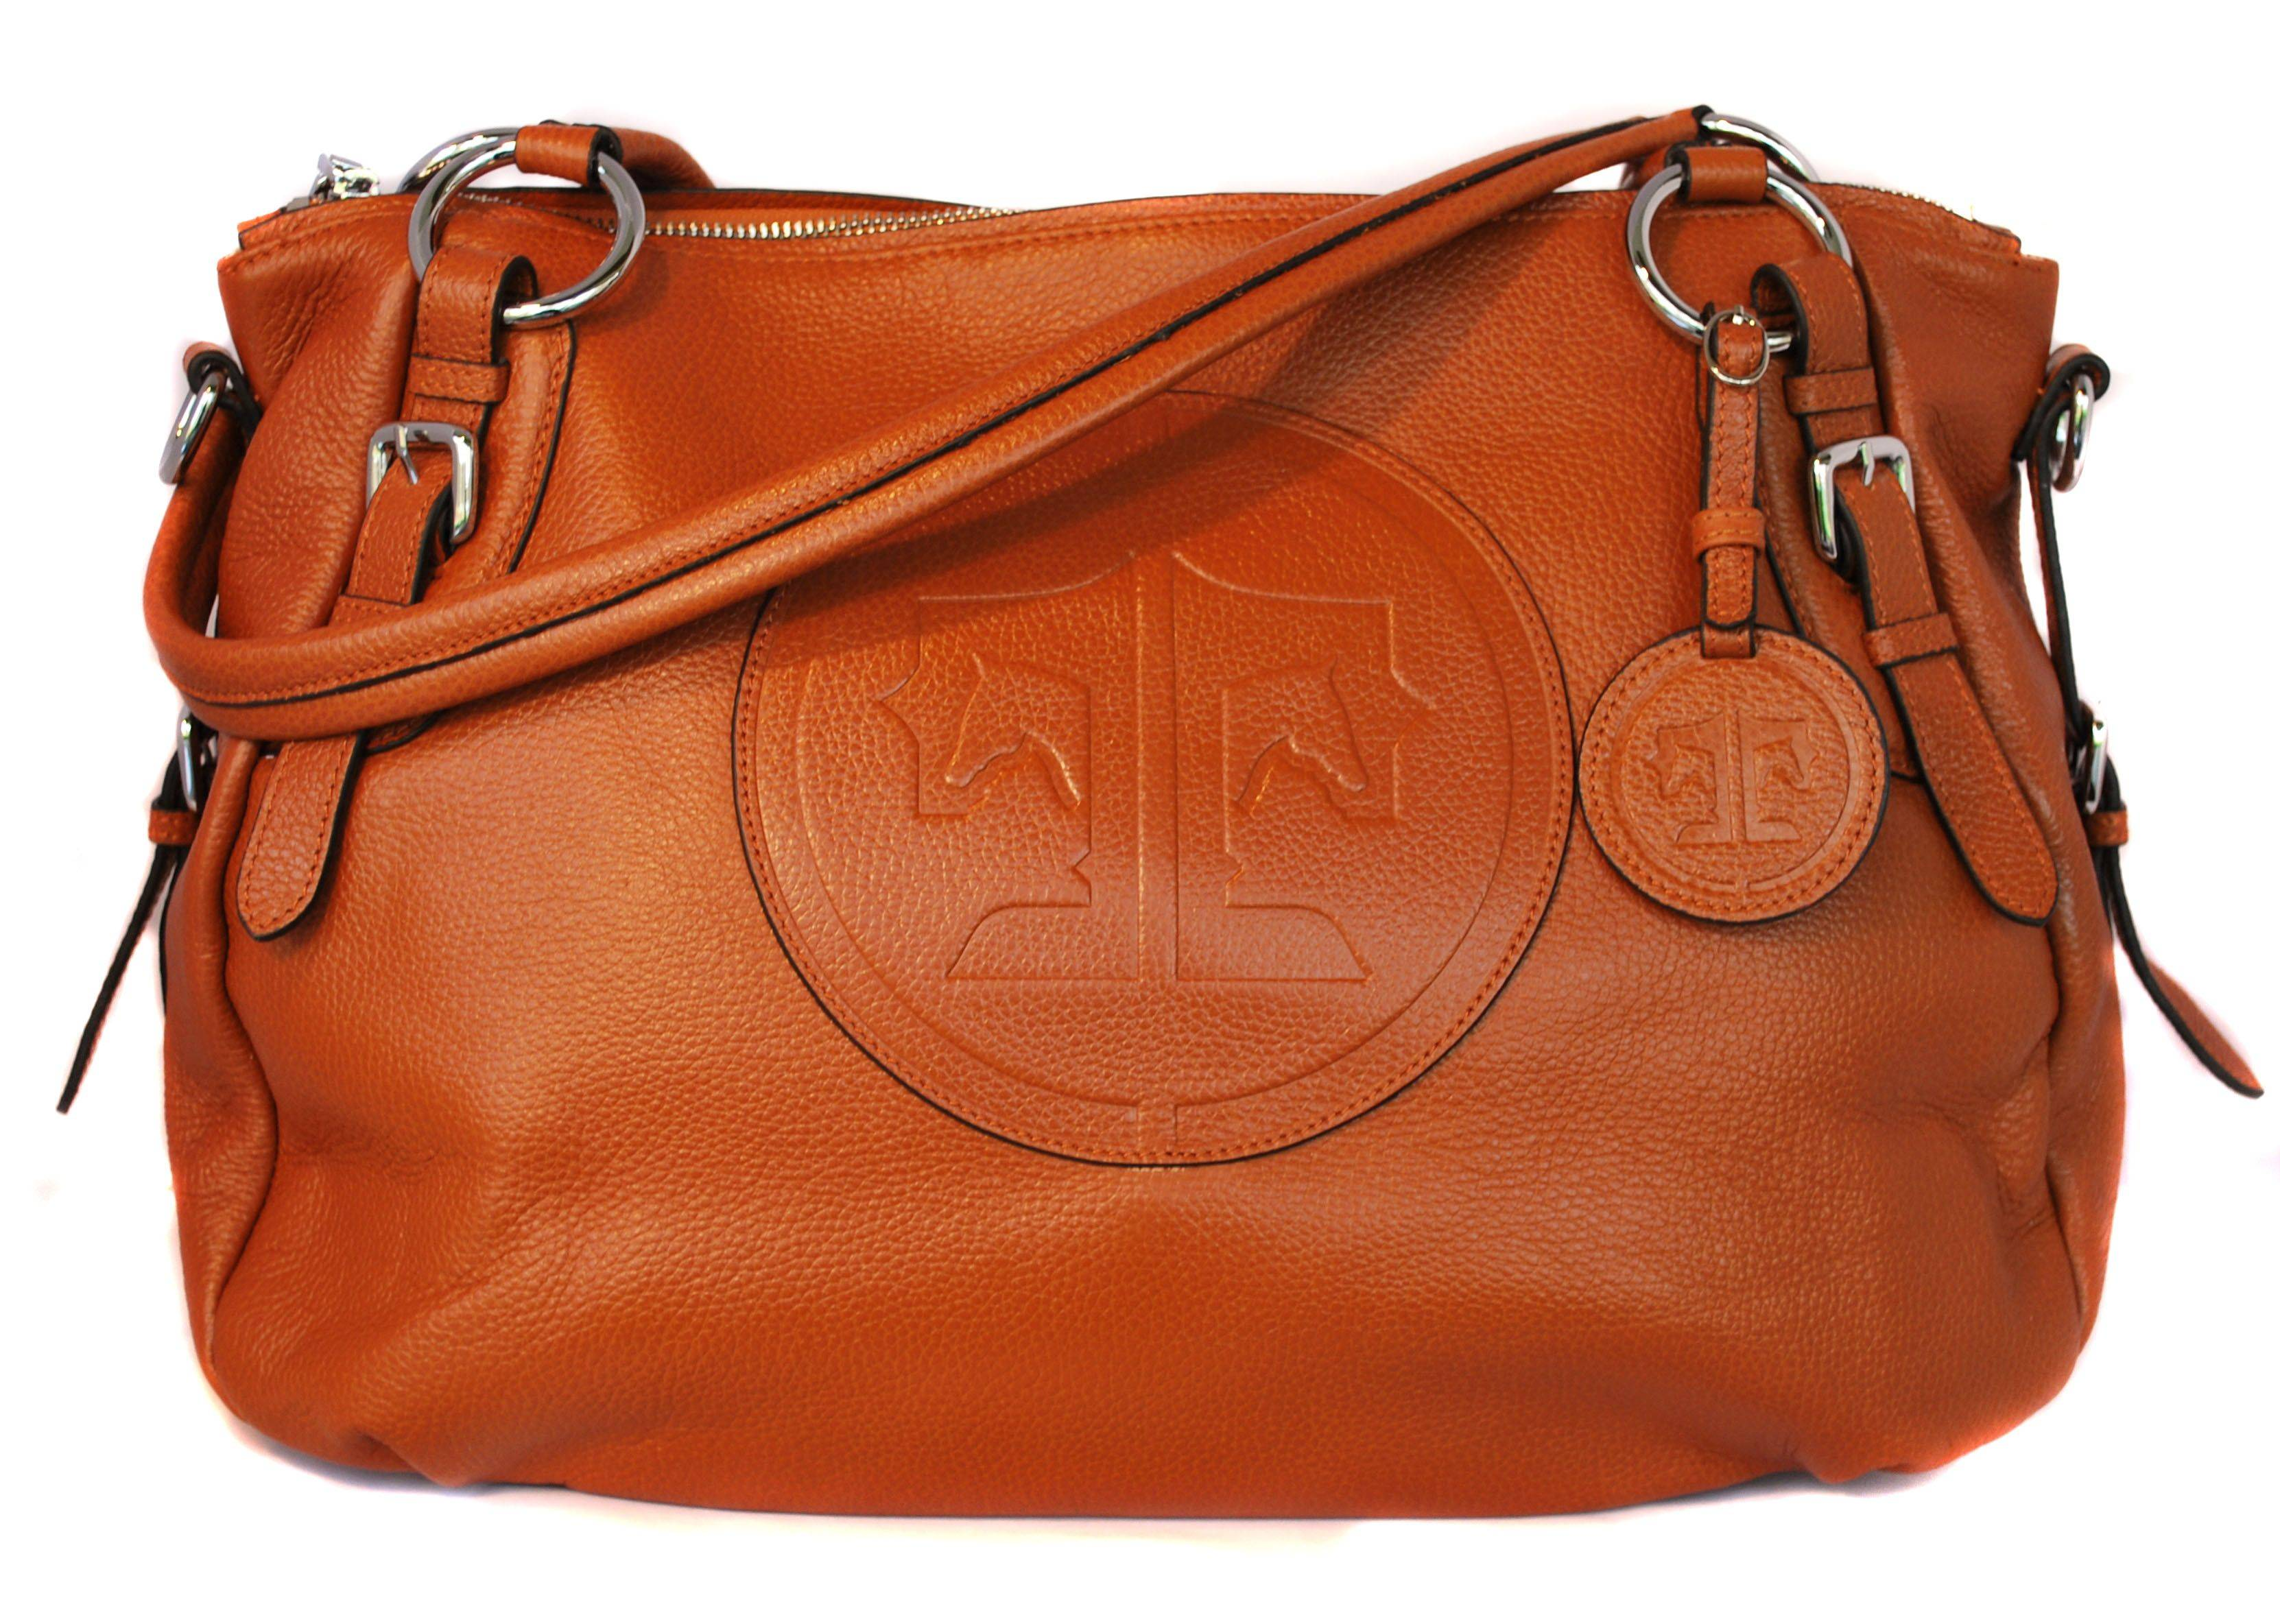 Tucker Tweed Lexington Purse - TT Signature